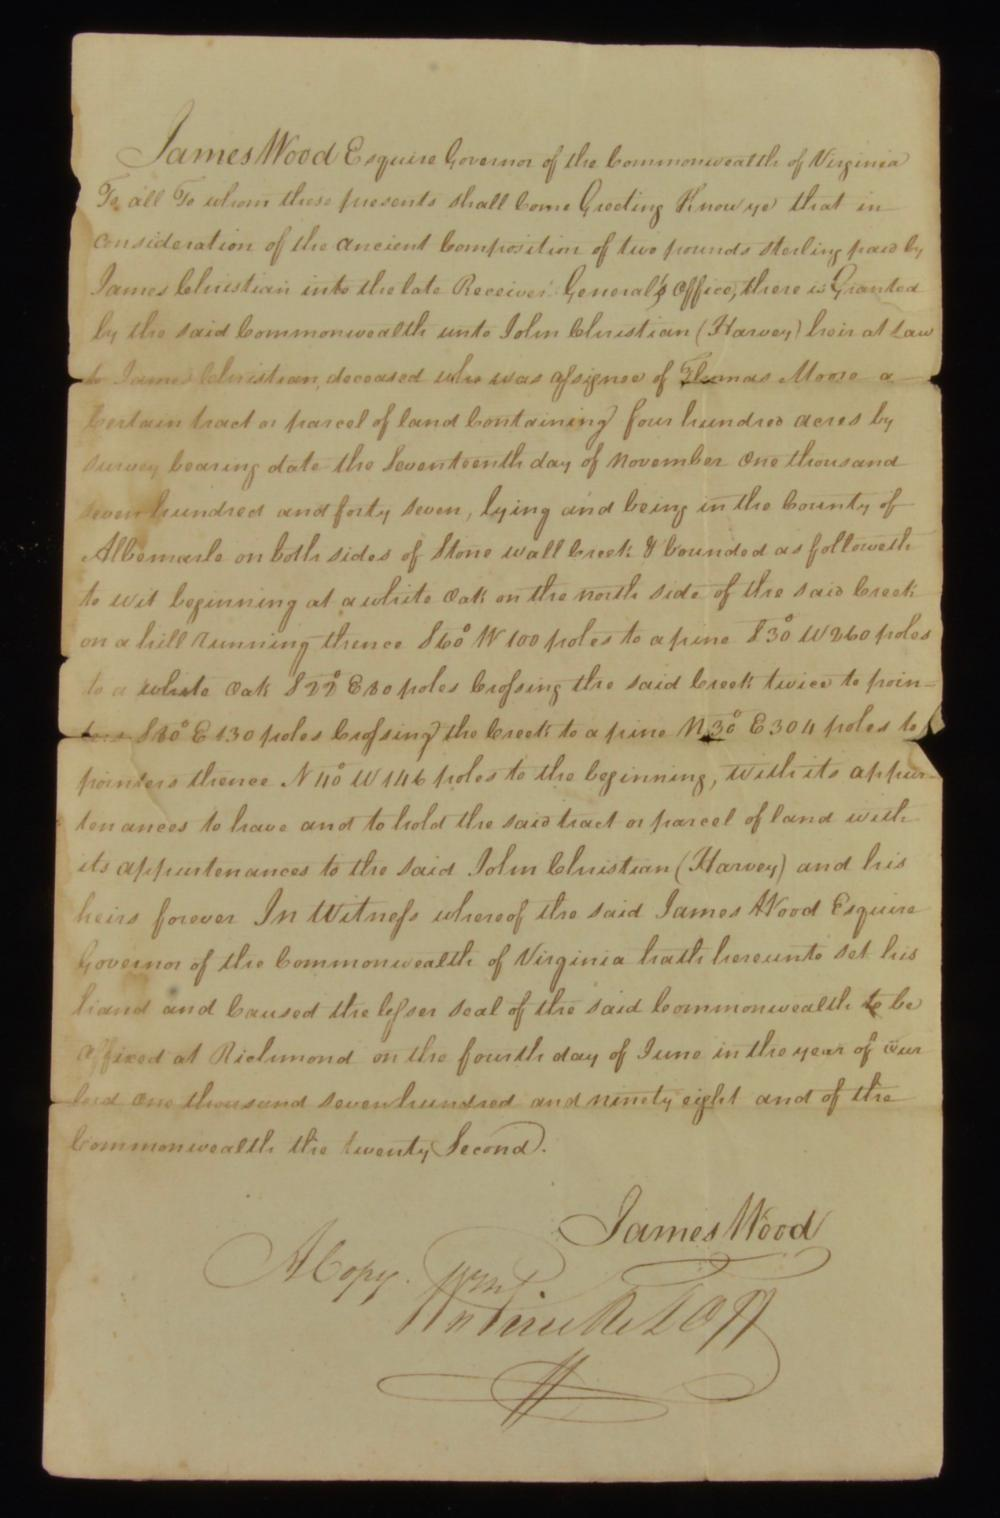 Governor James Wood Va. Signed 1798 Land Grant